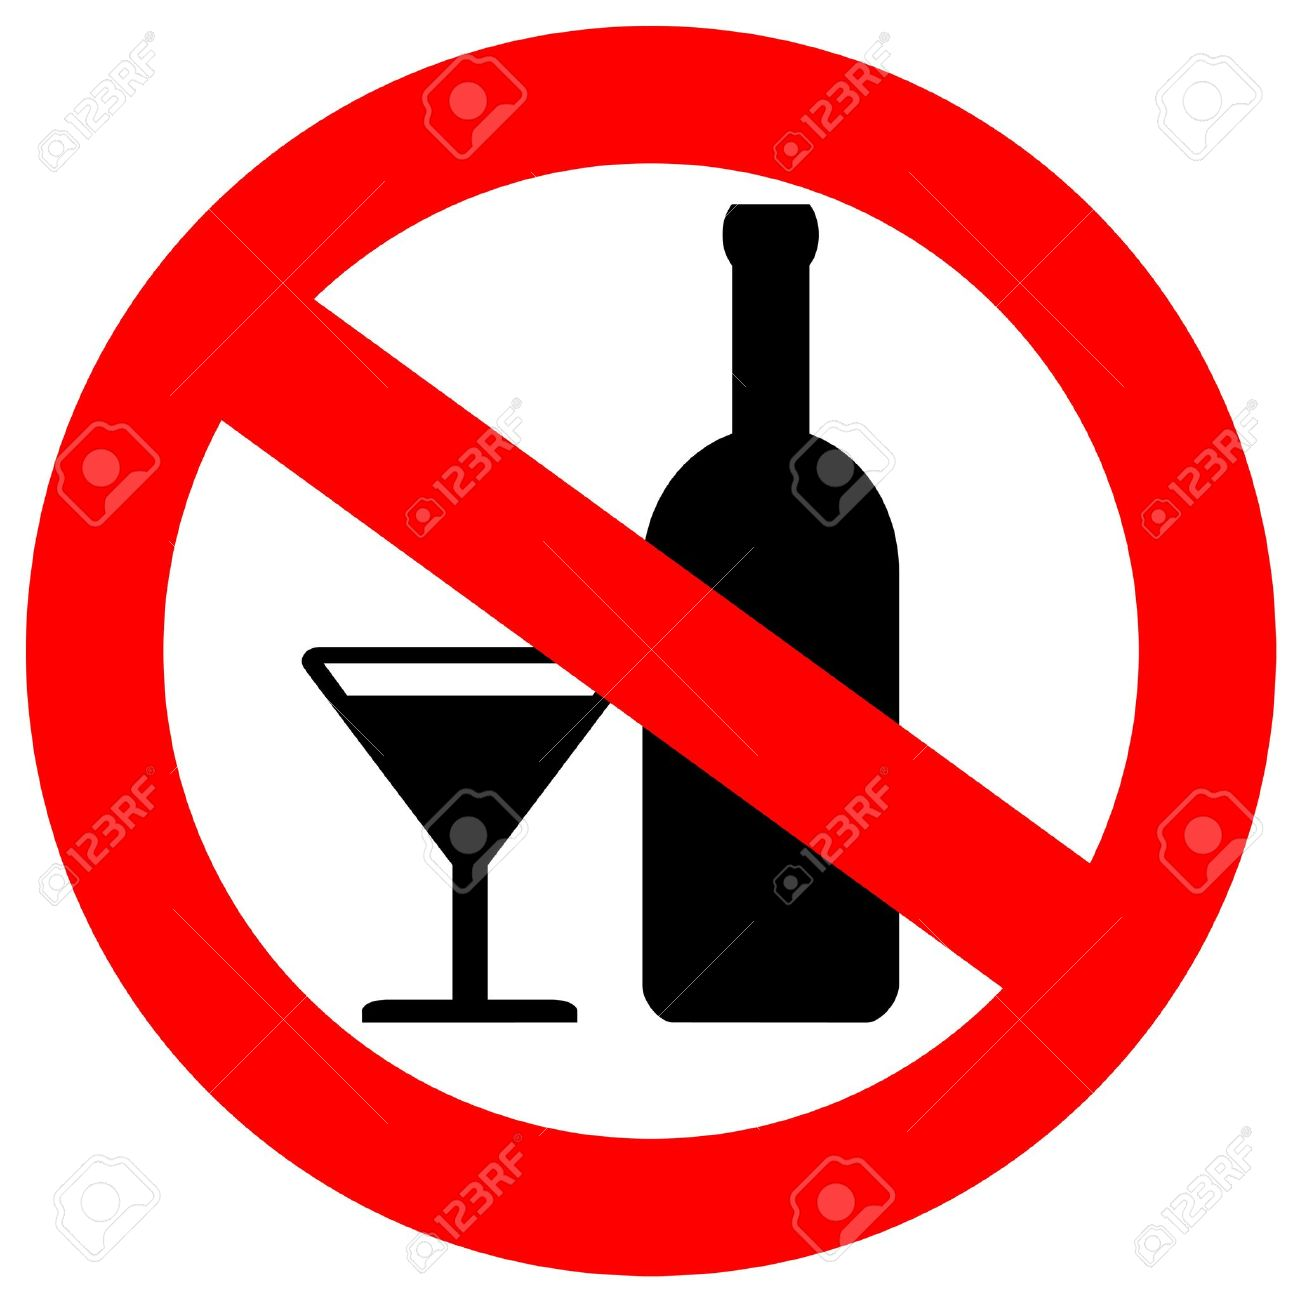 not alcoholic  No alcohol No Drugs And Alcohol Clipart